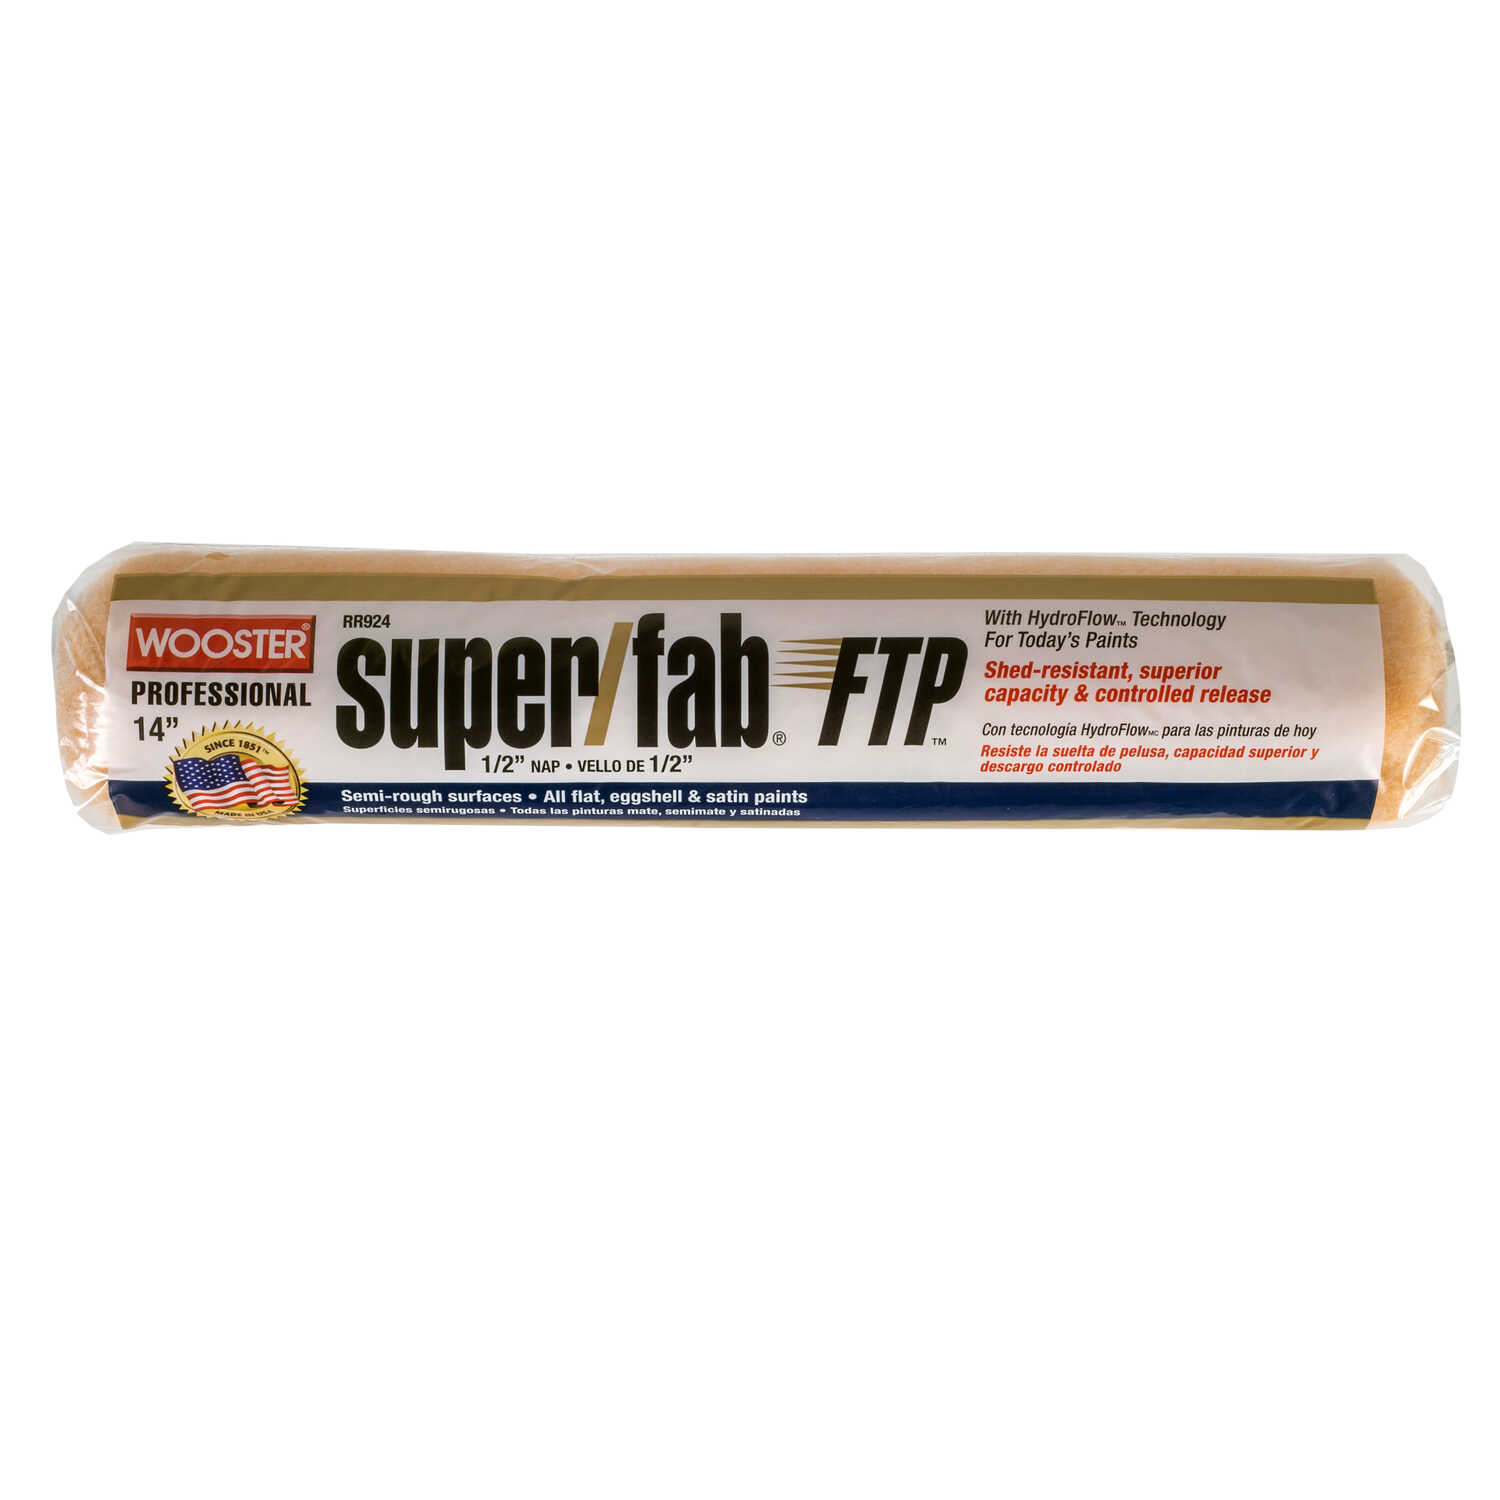 Wooster  Super/Fab FTP  Synthetic Blend  1/2 in.  x 14 in. W Paint Roller Cover  For Semi-Rough Surf